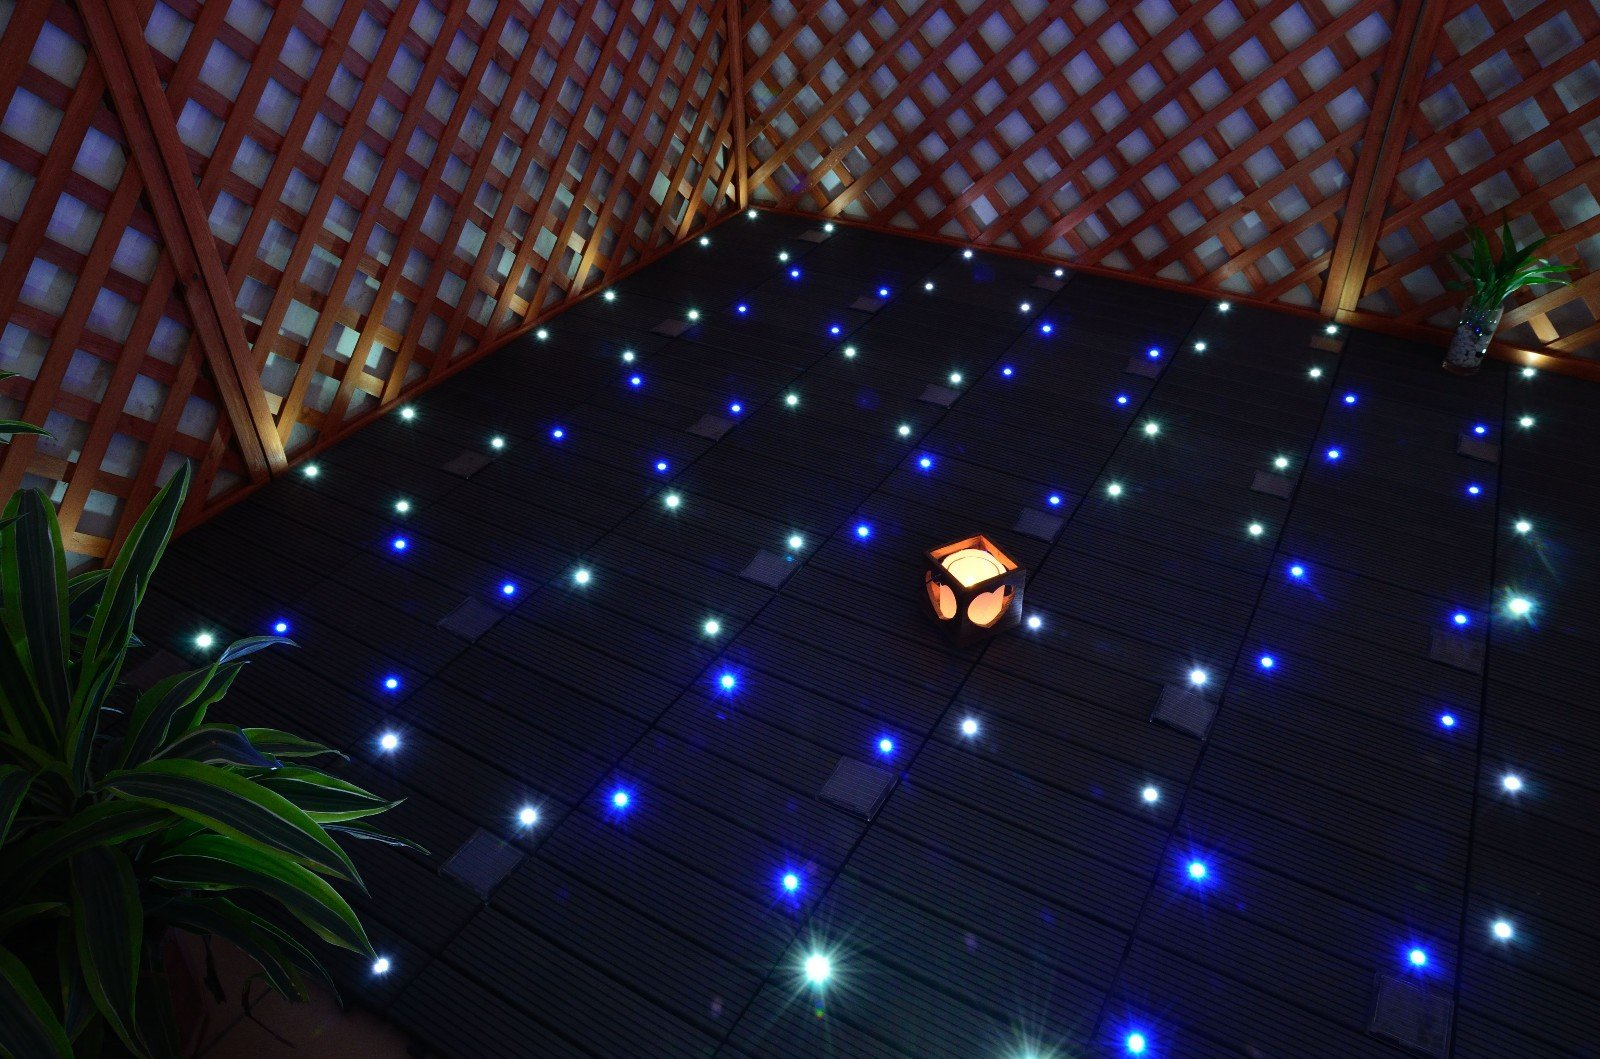 JIABANG eco-friendly patio deck tiles home-7